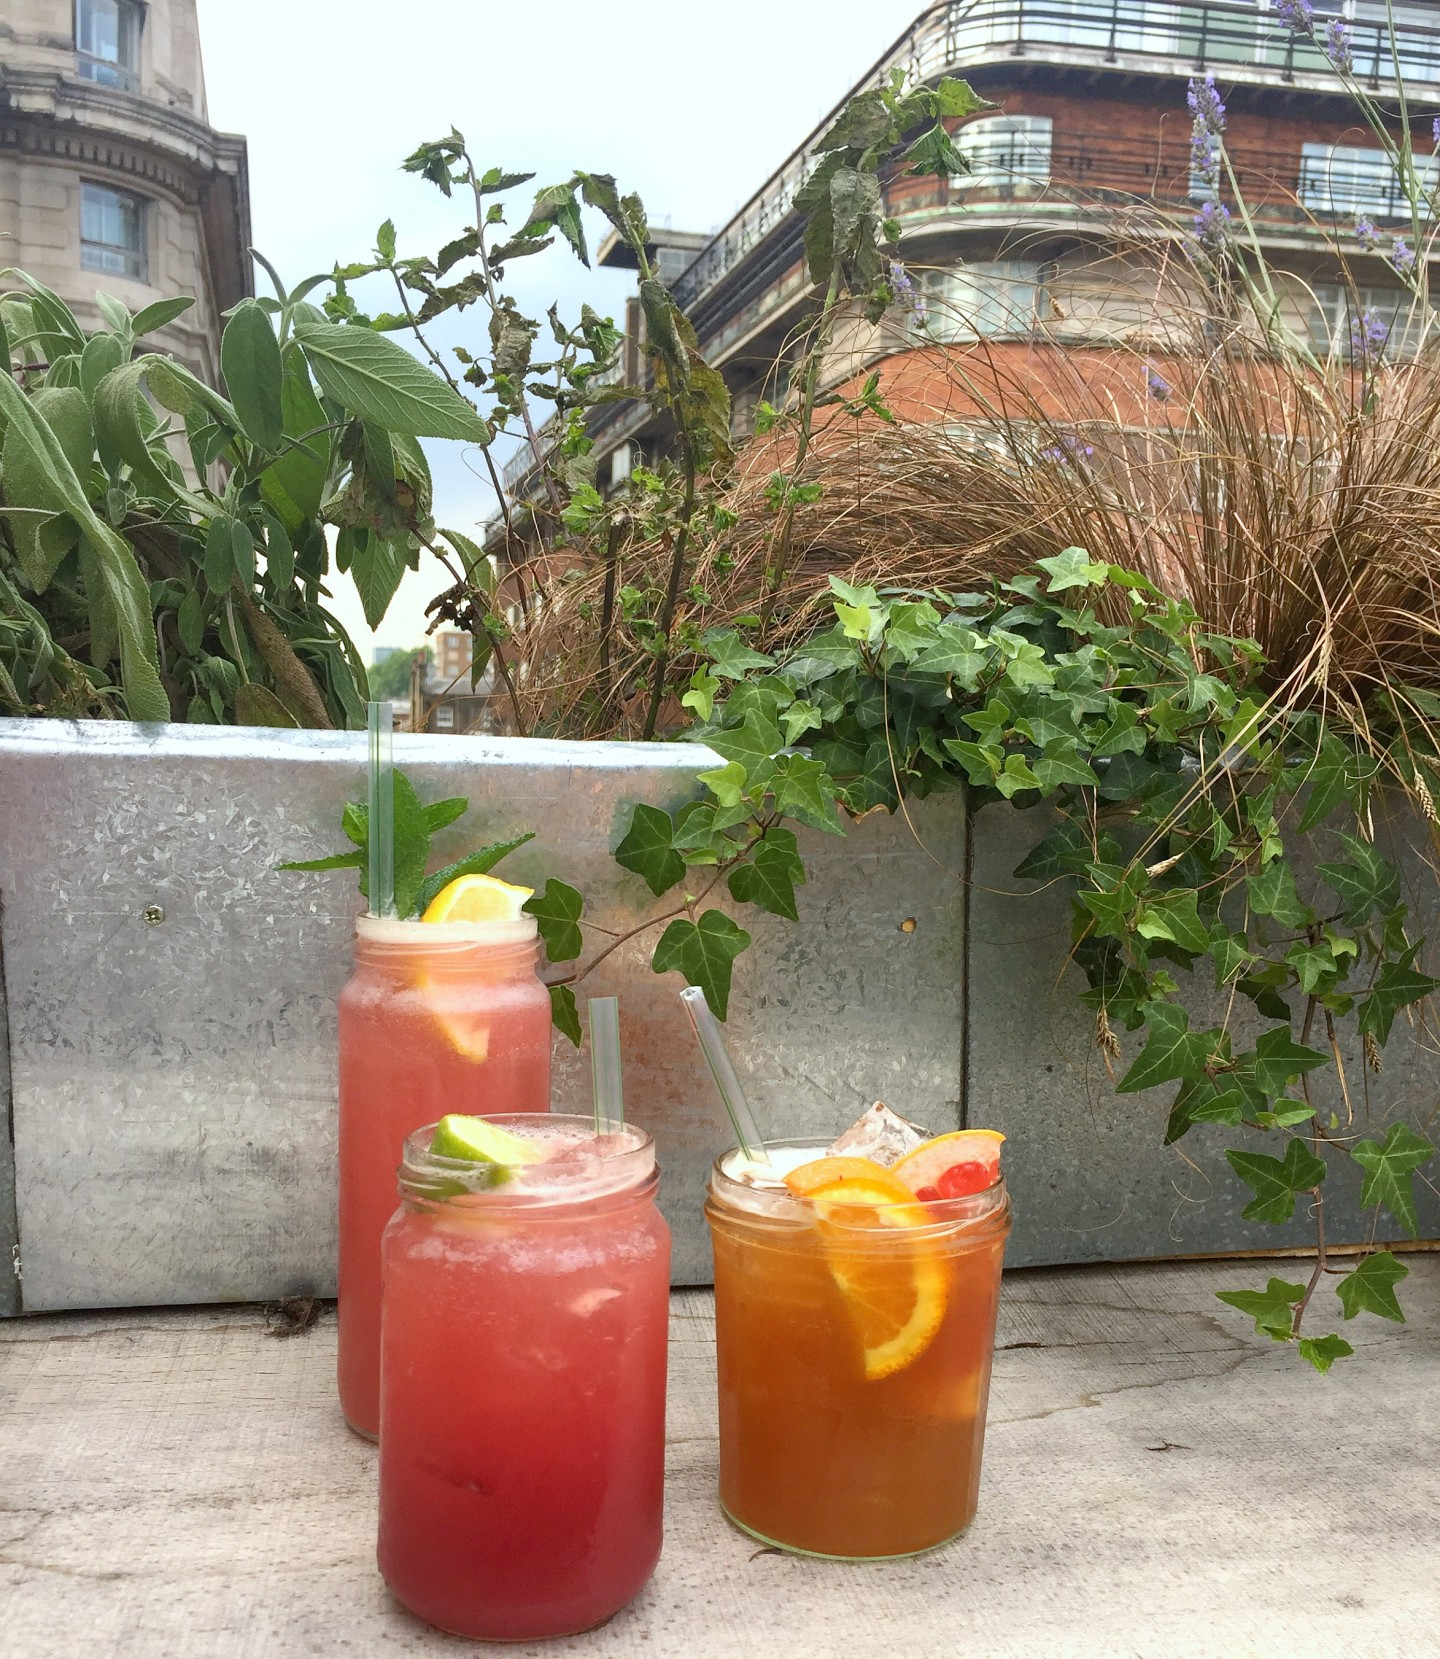 The fruity cocktails at Sisu rooftop bar on Oxford Street, London.